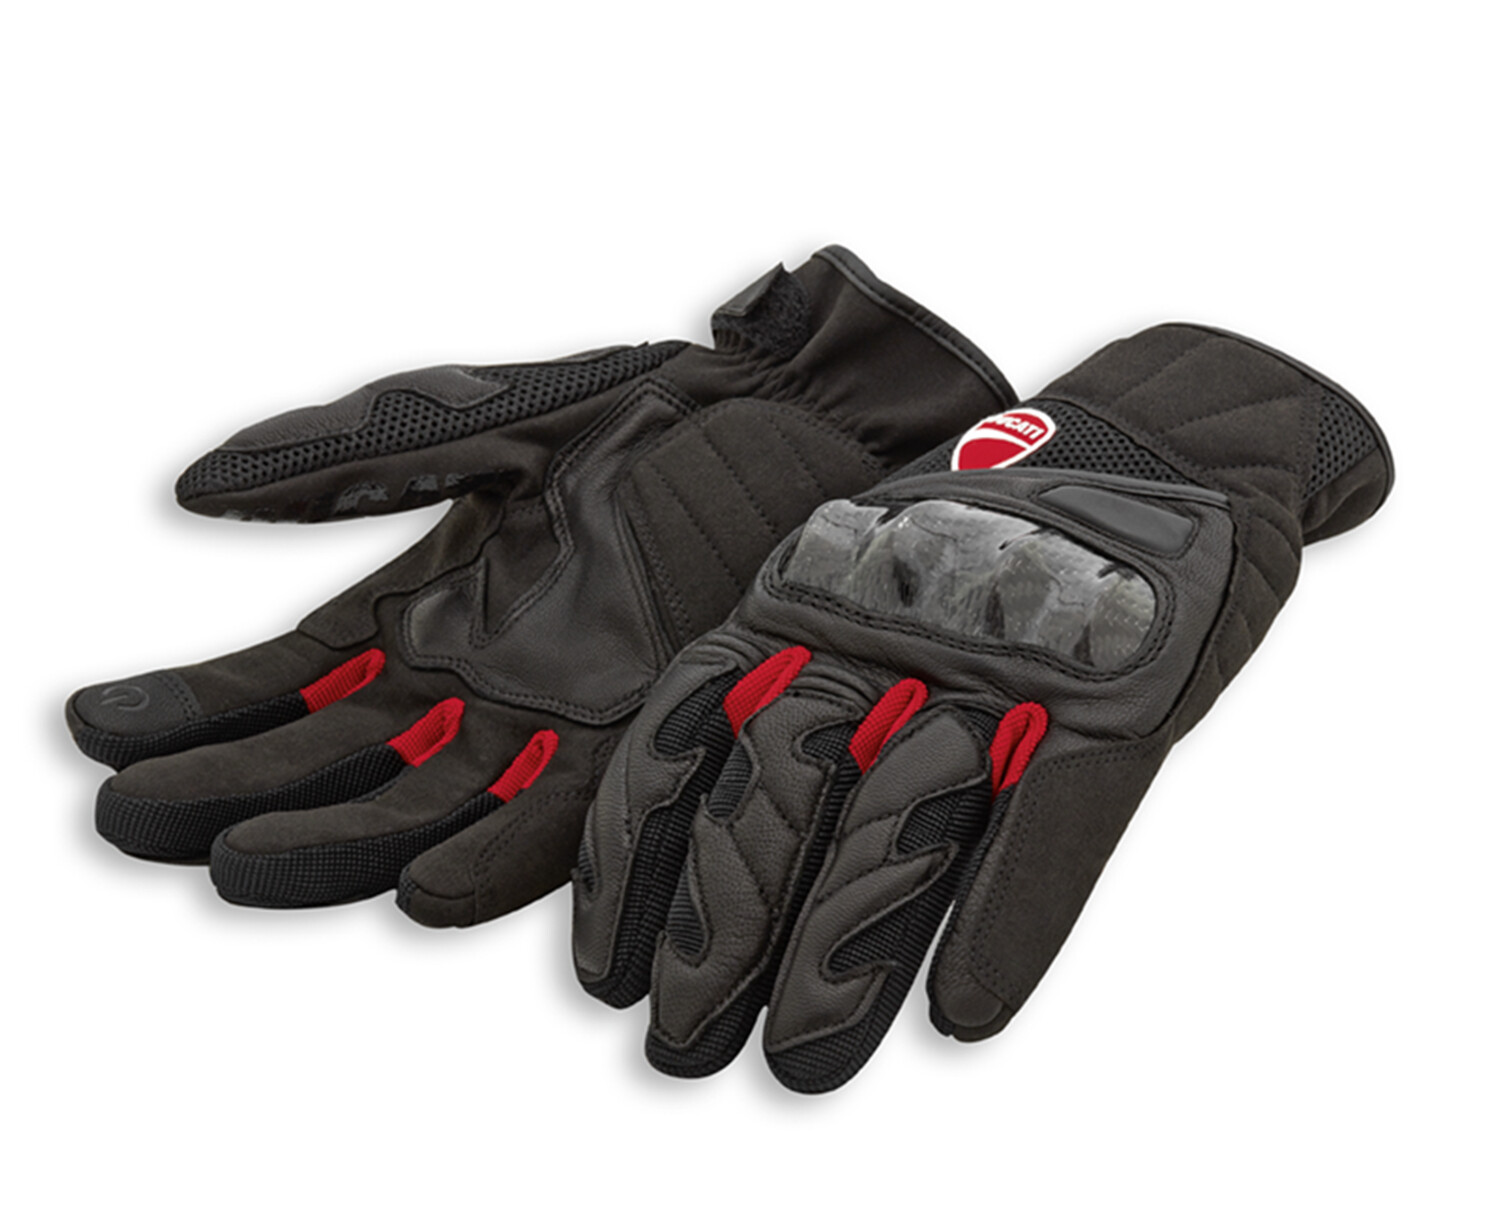 City C3 Fabric-leather gloves